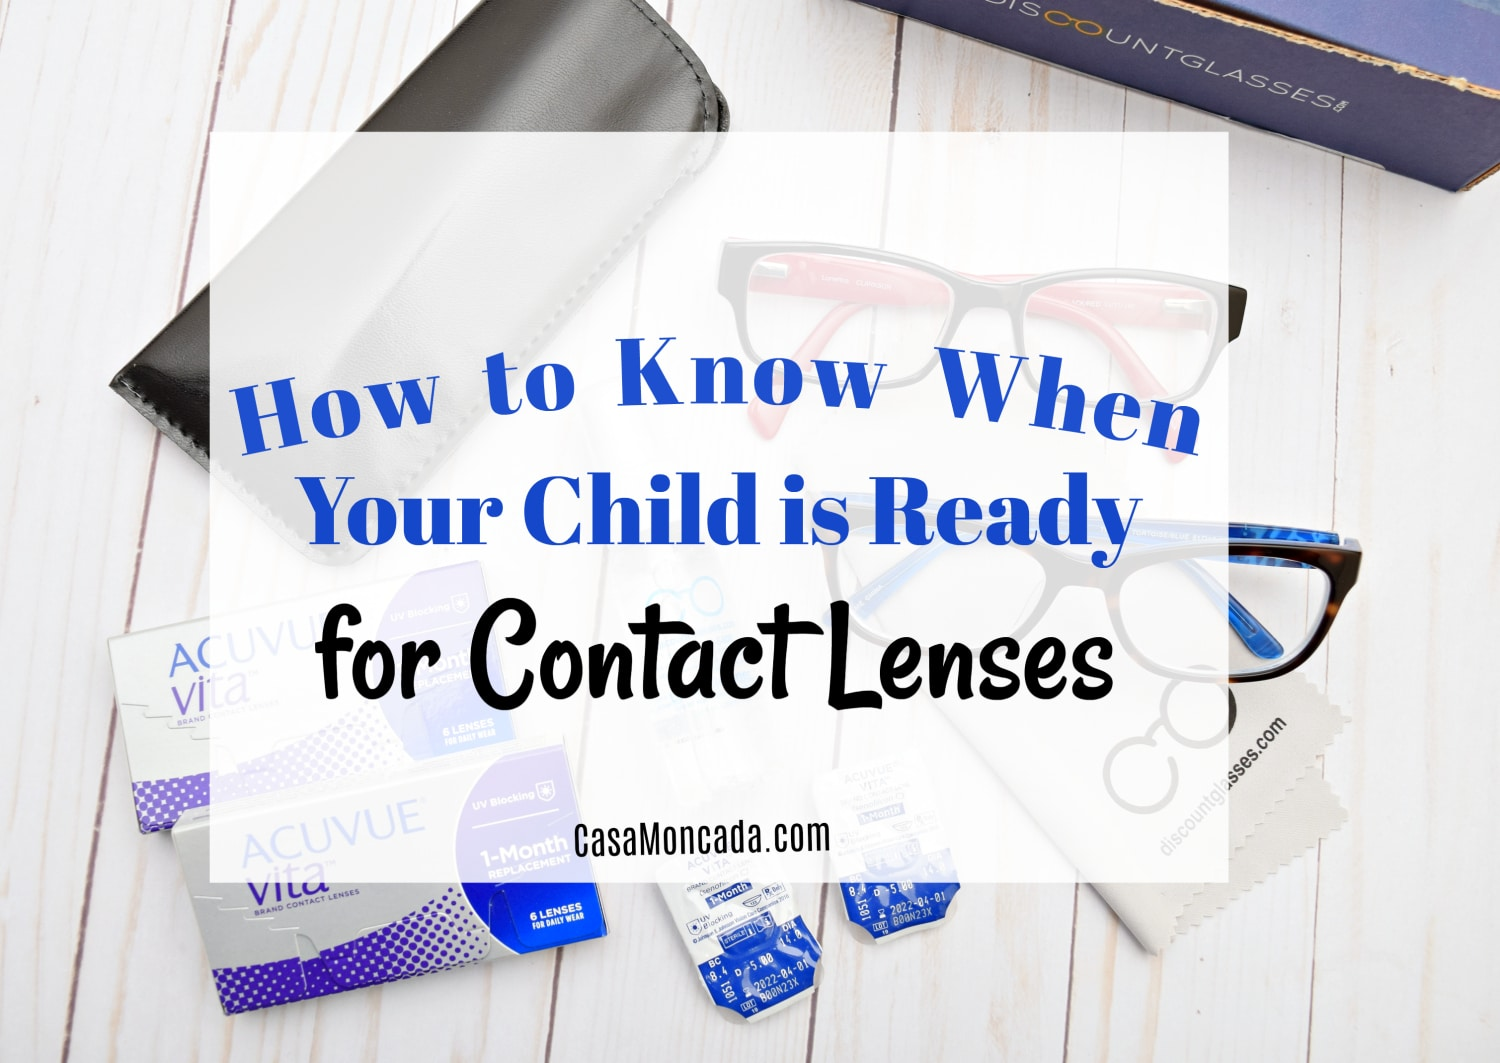 How to know when your kids are ready fro contact lenses